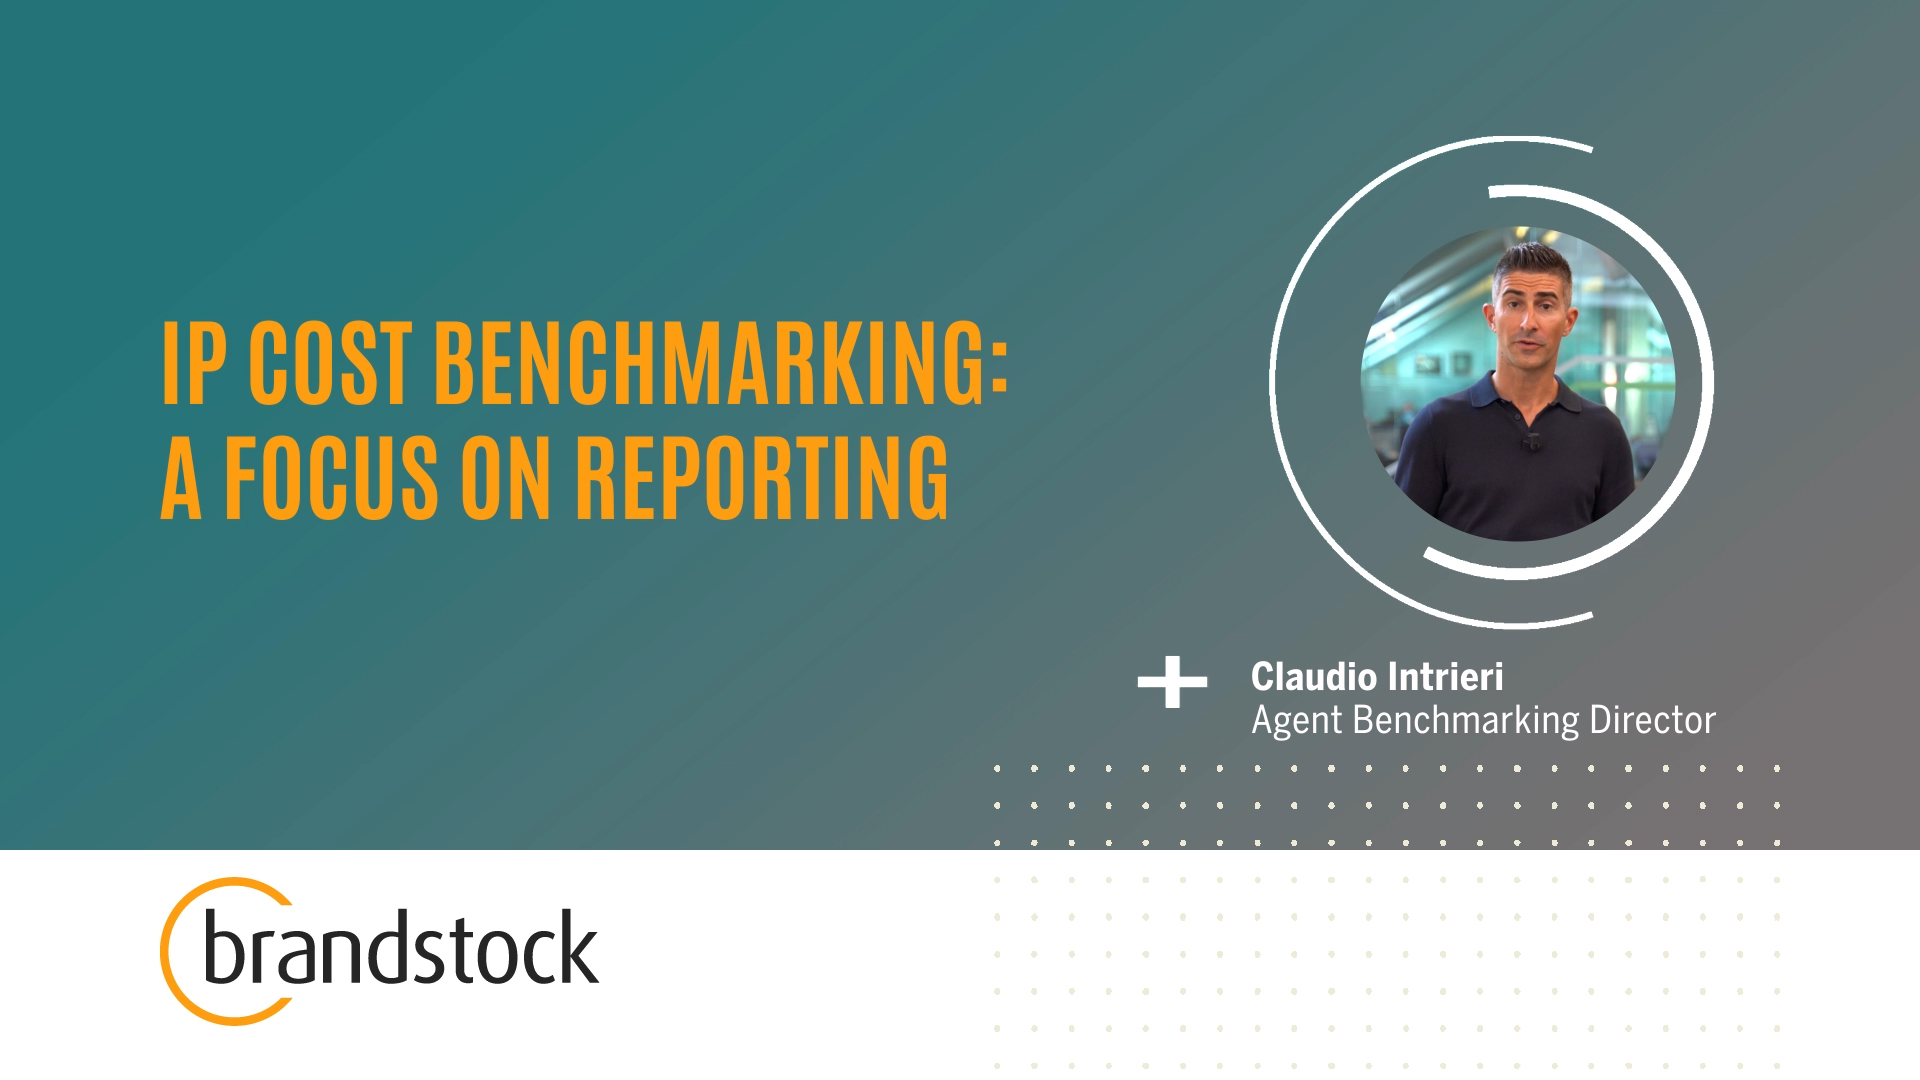 IP cost benchmarking